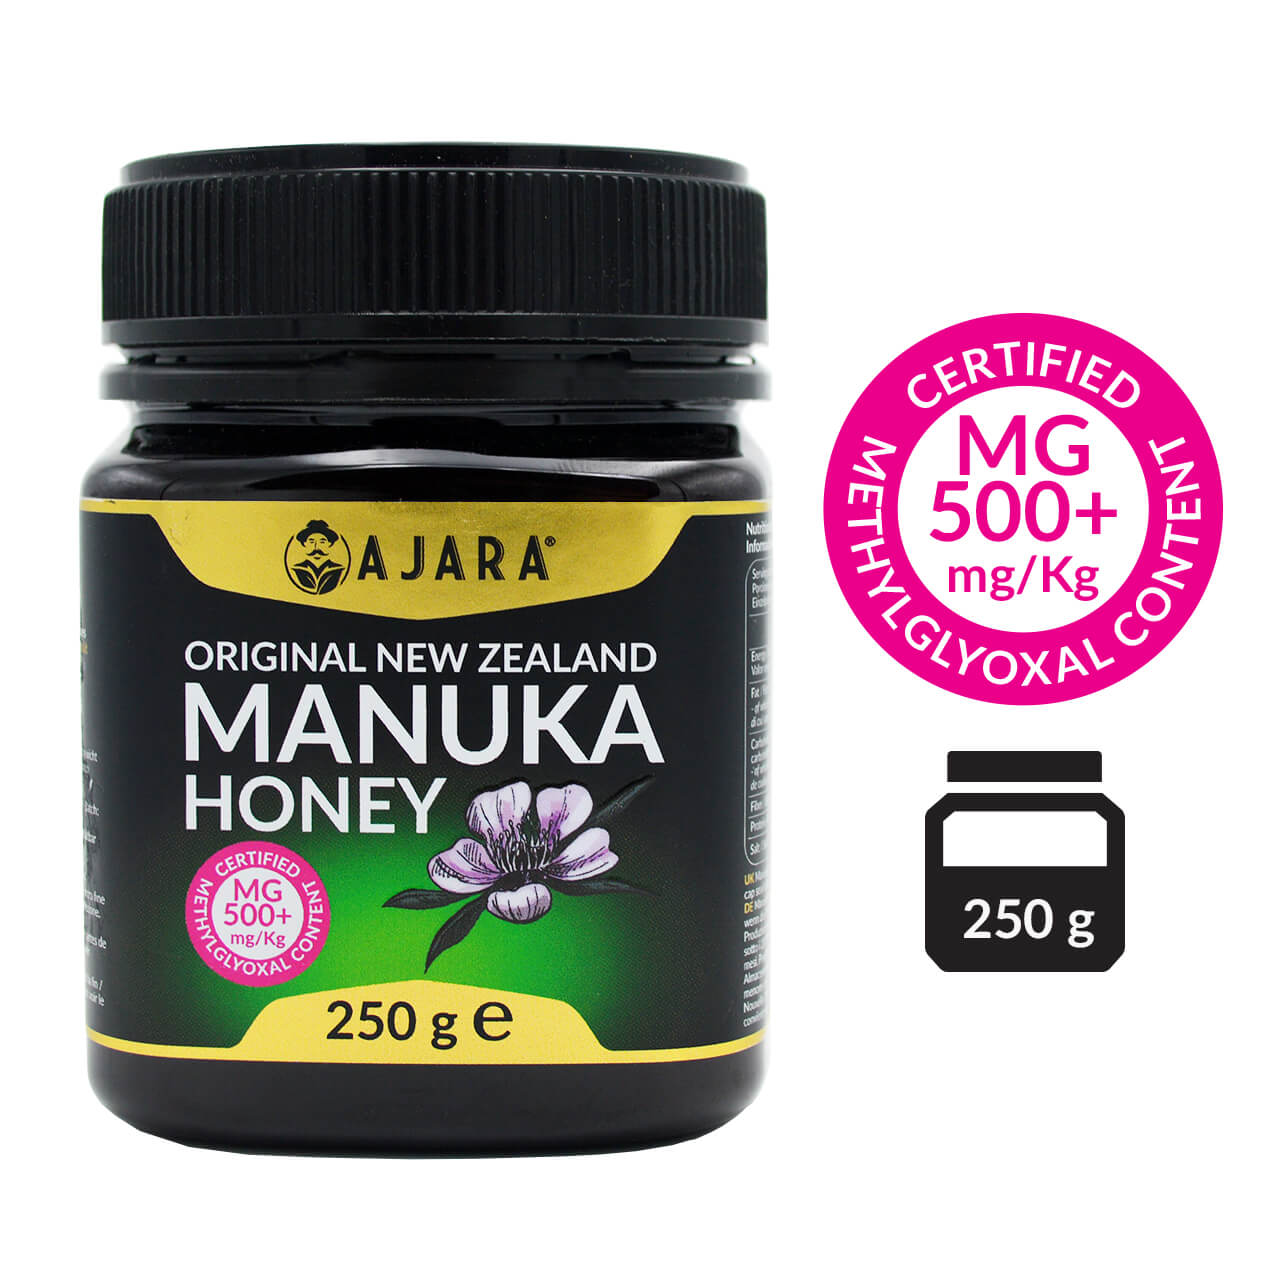 Manuka honey MG 500+ 250g